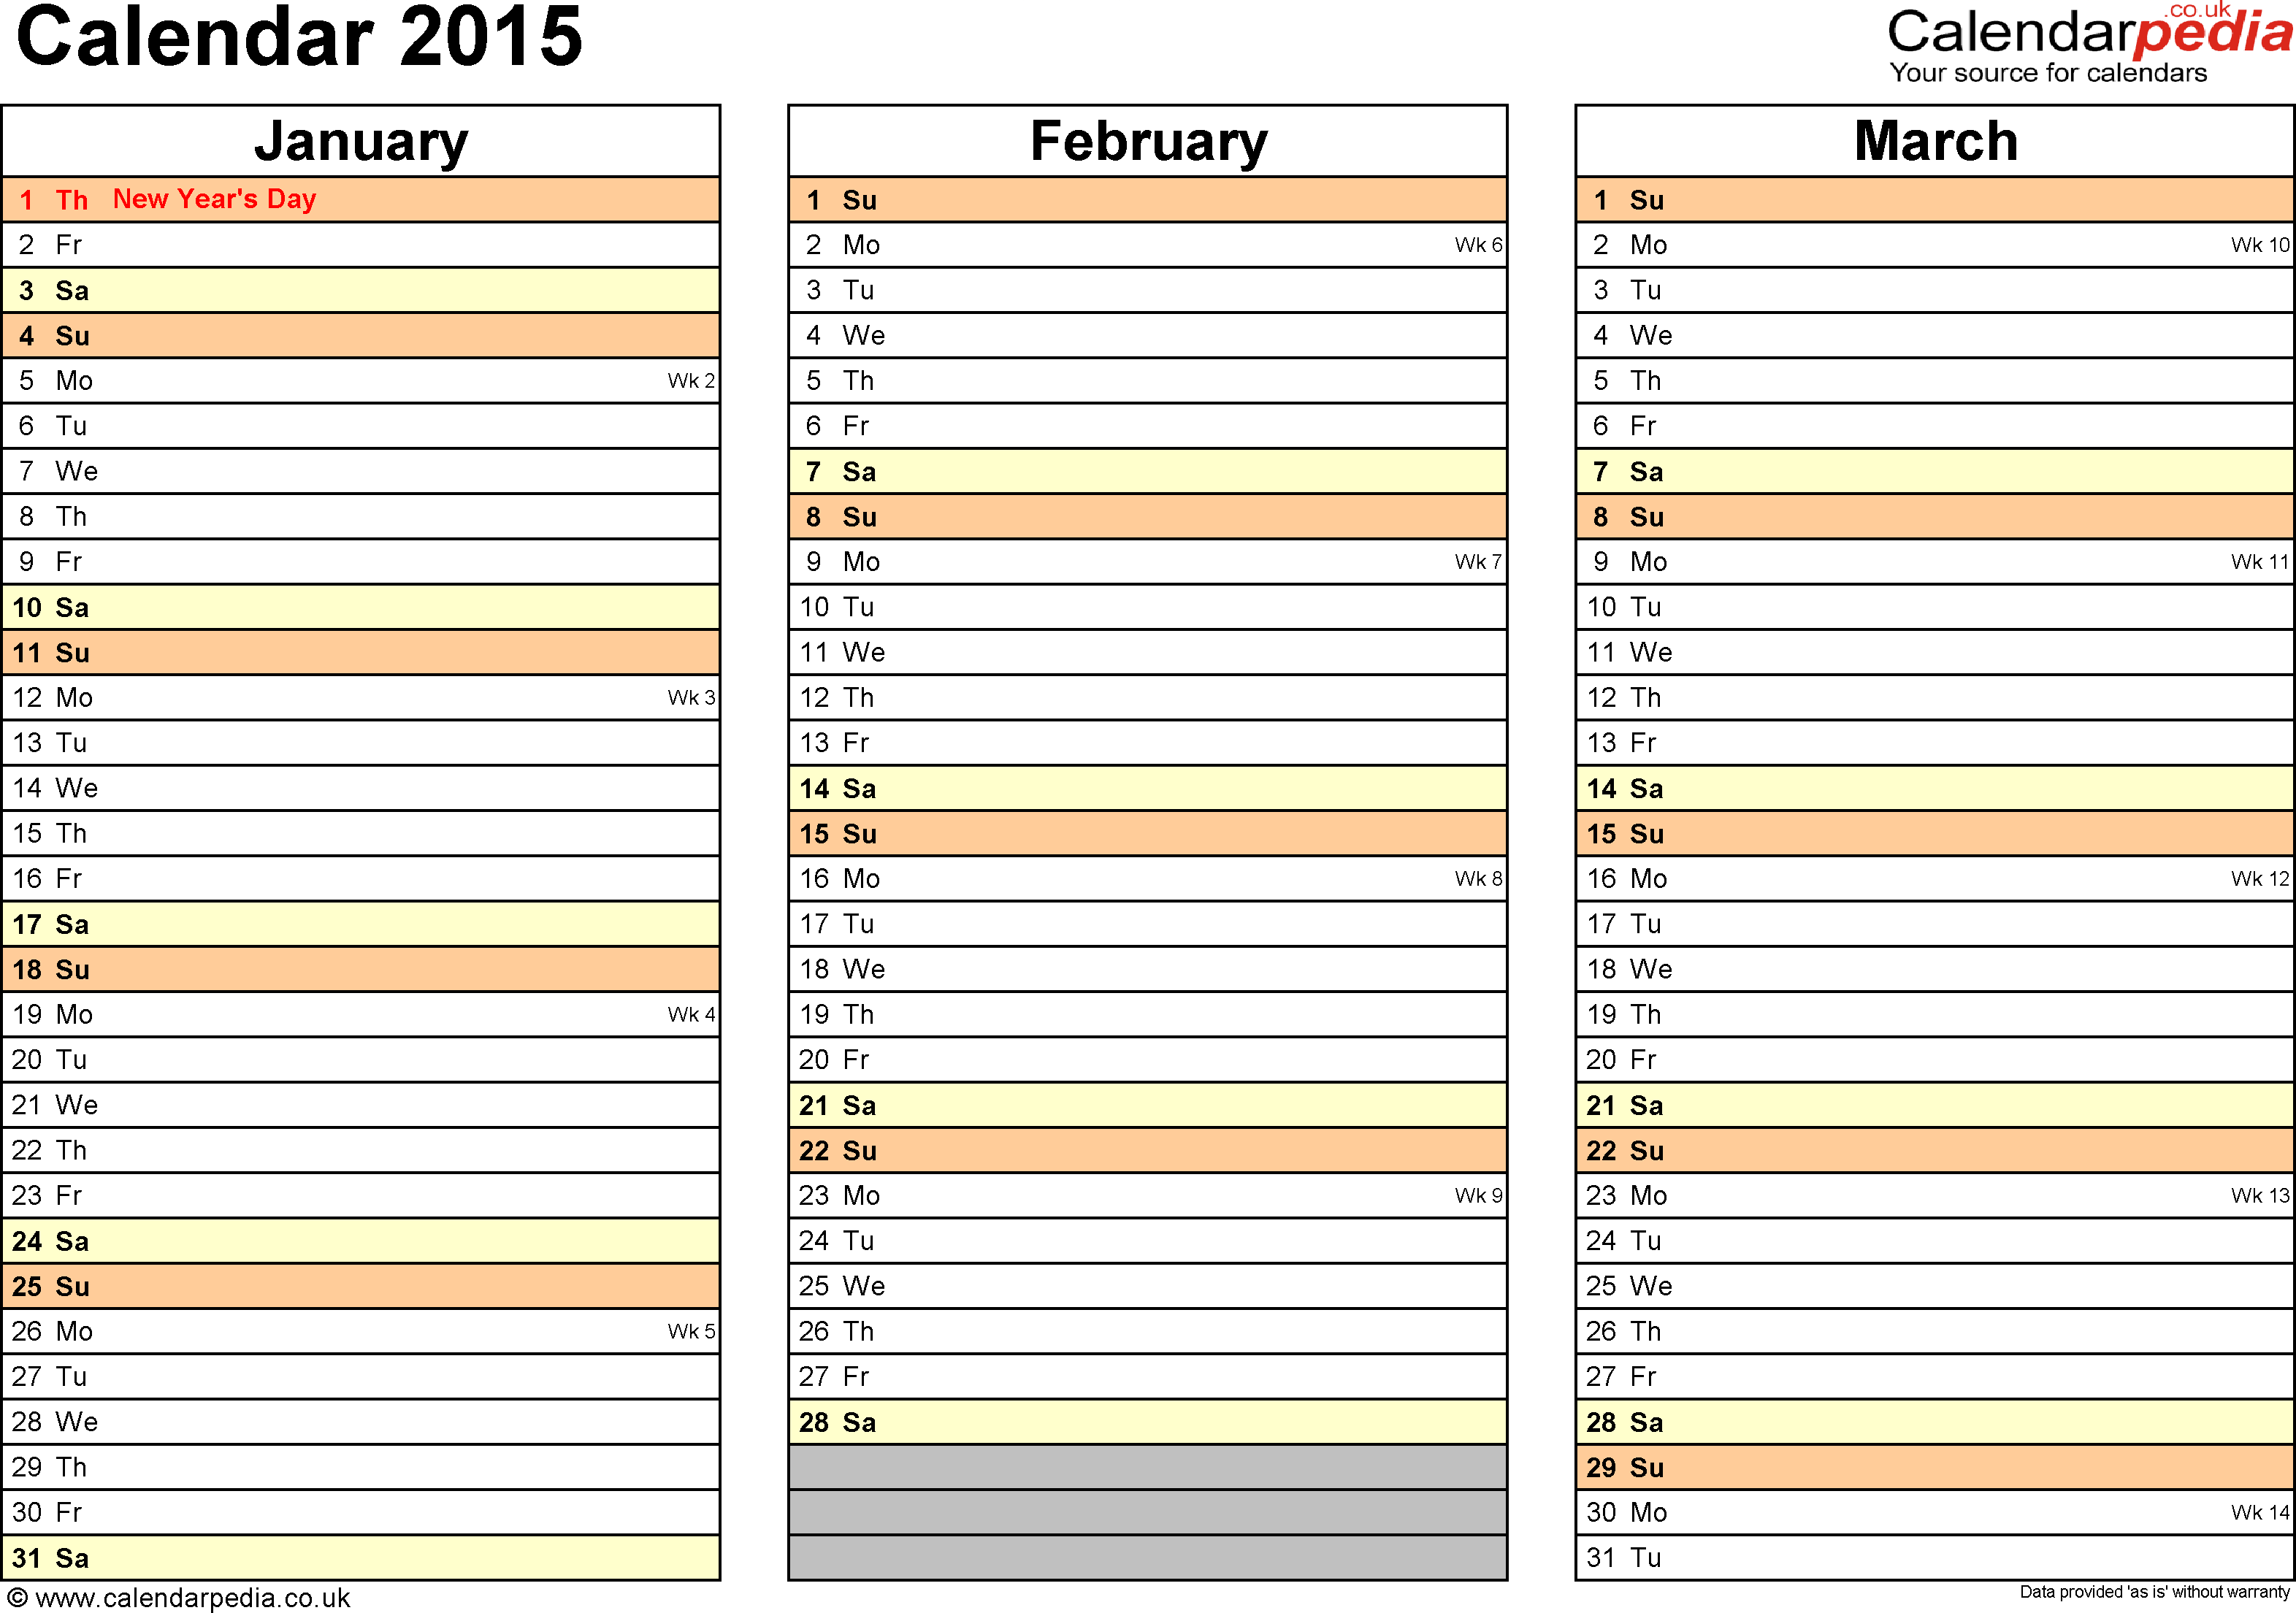 Template 5: Yearly calendar 2015 as Excel template, landscape orientation, 4 pages, months horizontally, days vertically, with UK bank holidays and week numbers